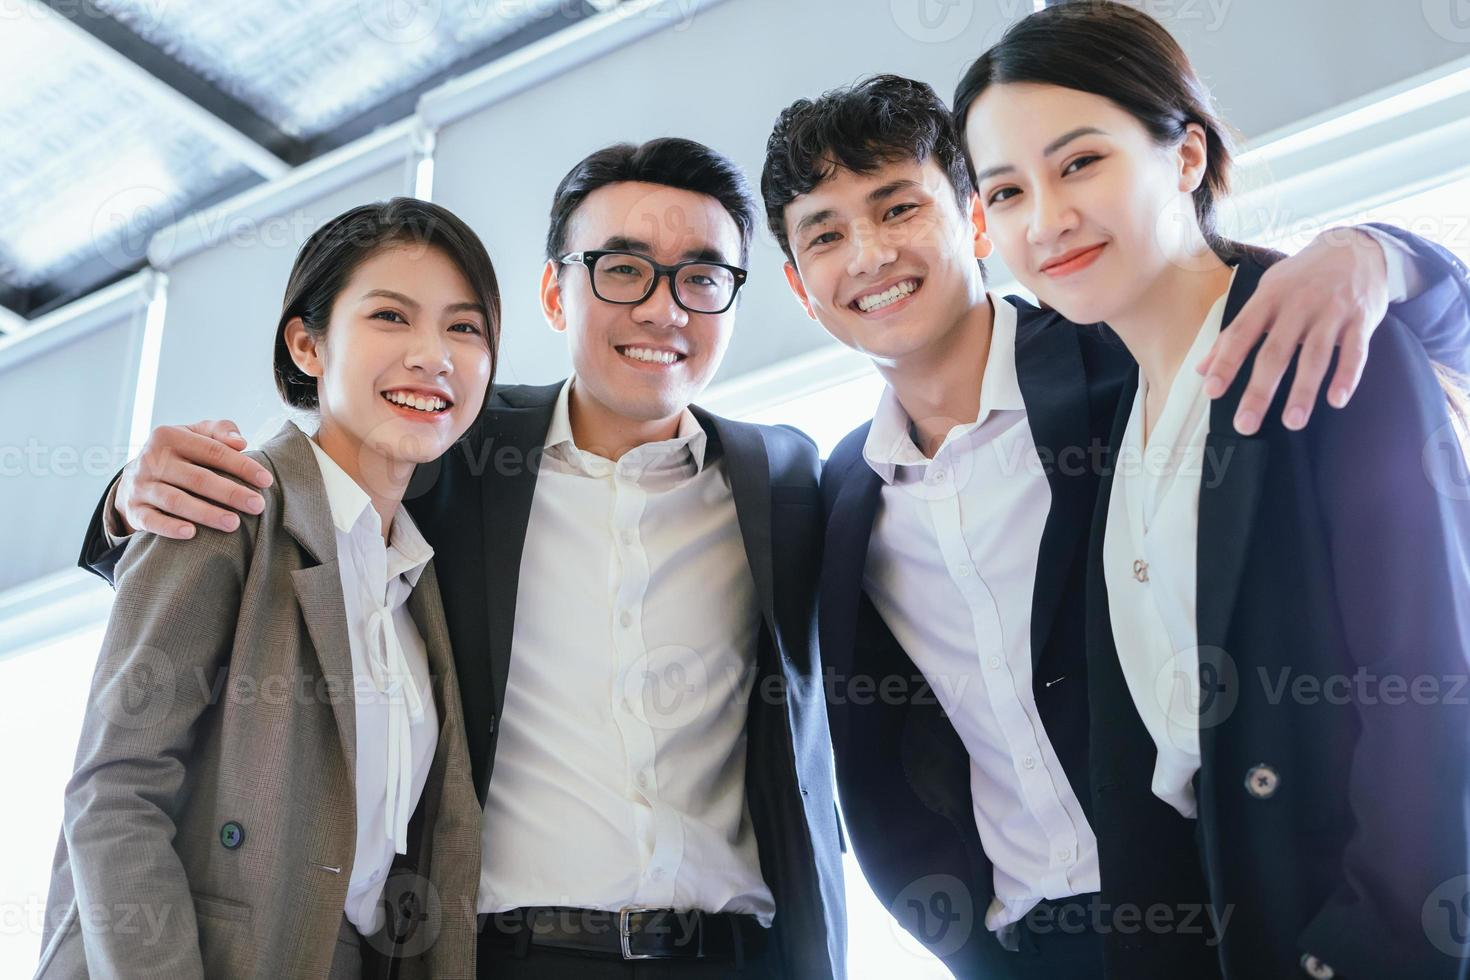 Group portrait of Asian business people photo